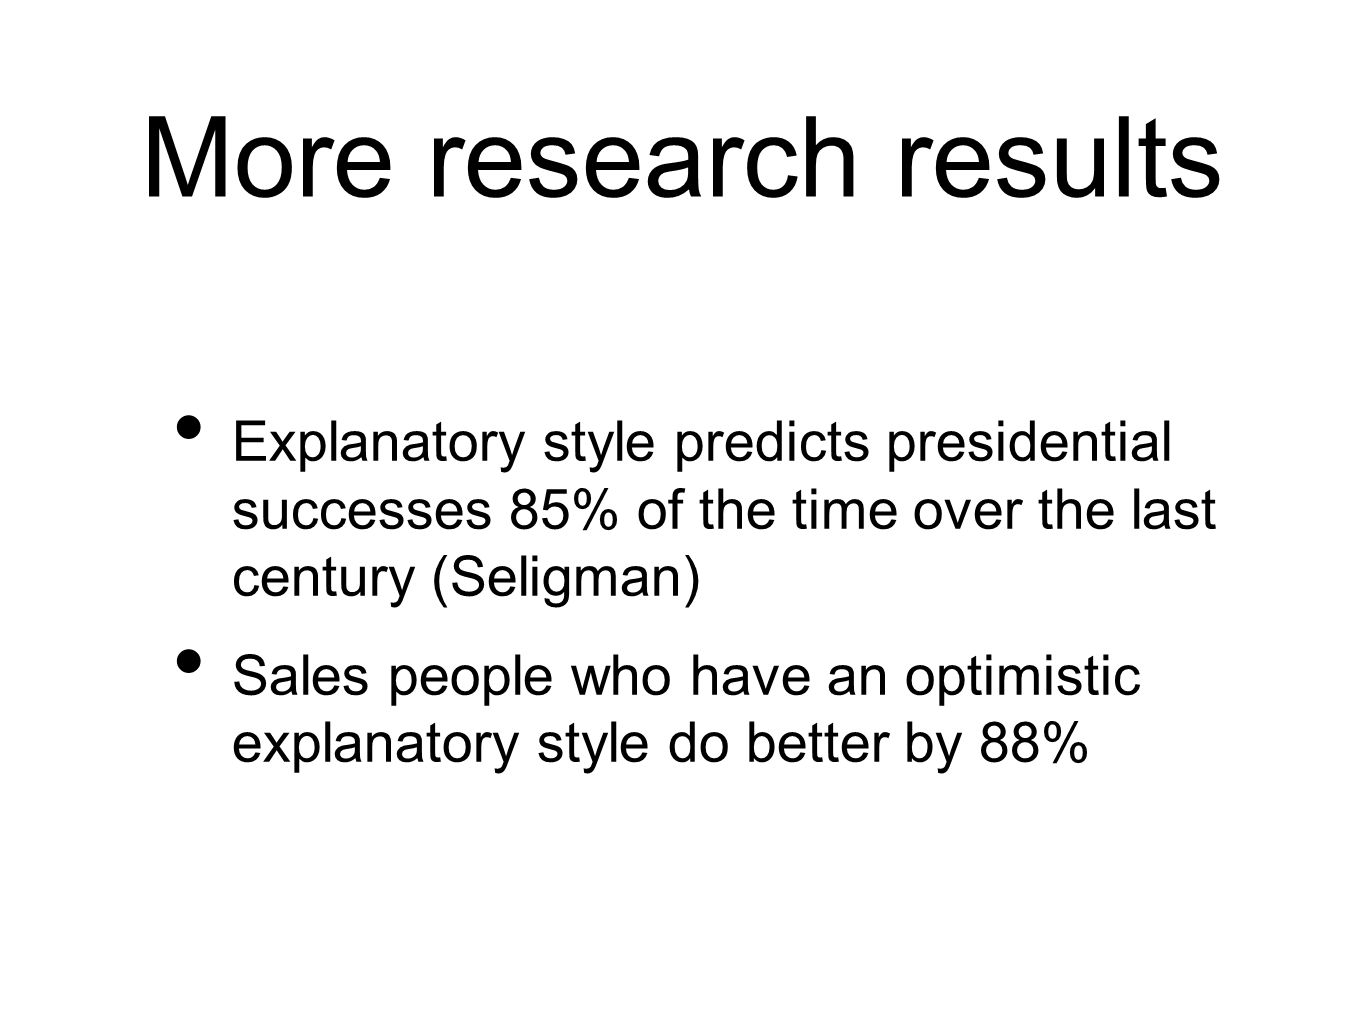 More research results Explanatory style predicts presidential successes 85% of the time over the last century (Seligman) Sales people who have an optimistic explanatory style do better by 88%